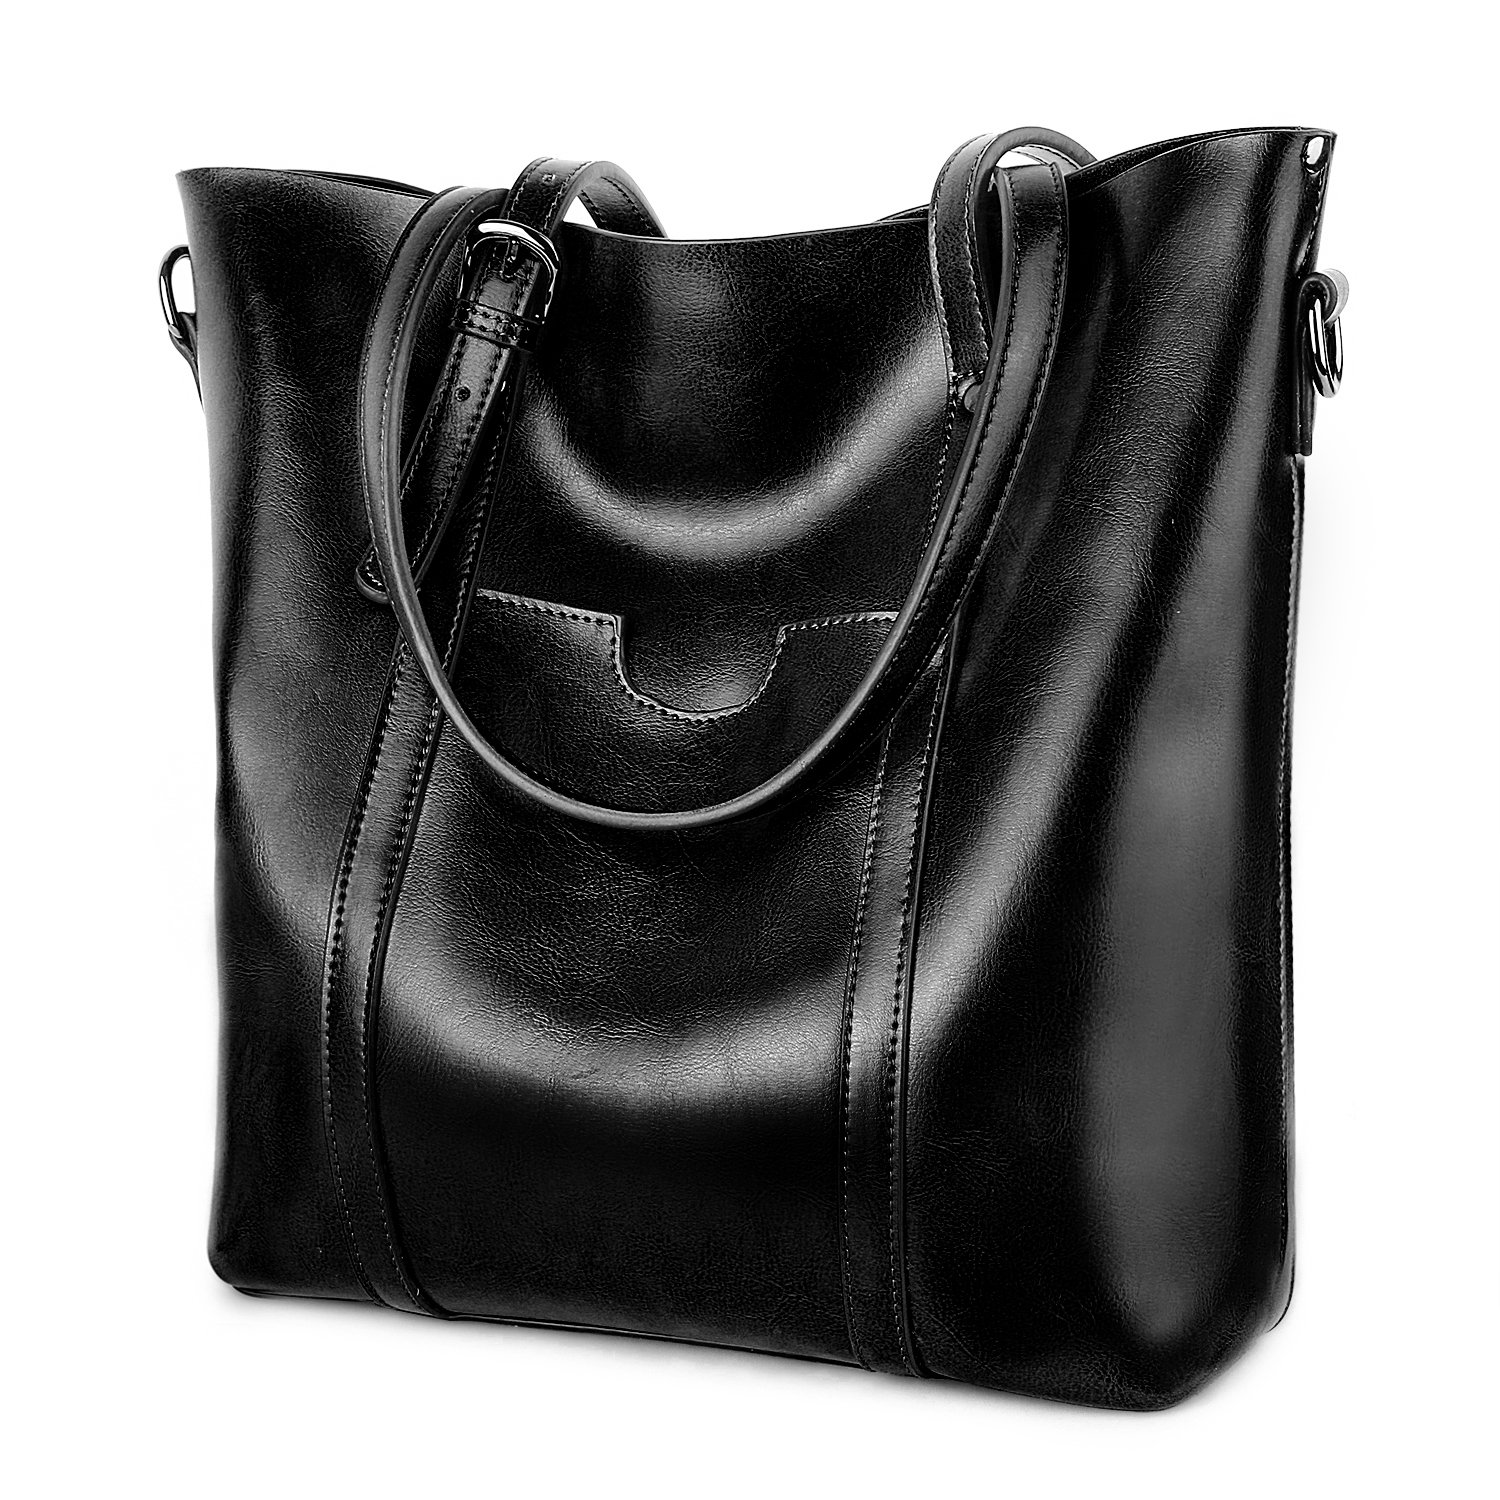 YALUXE Women's Vintage Style Soft Leather Work Tote High Style Shoulder Bag for Women black by YALUXE (Image #1)